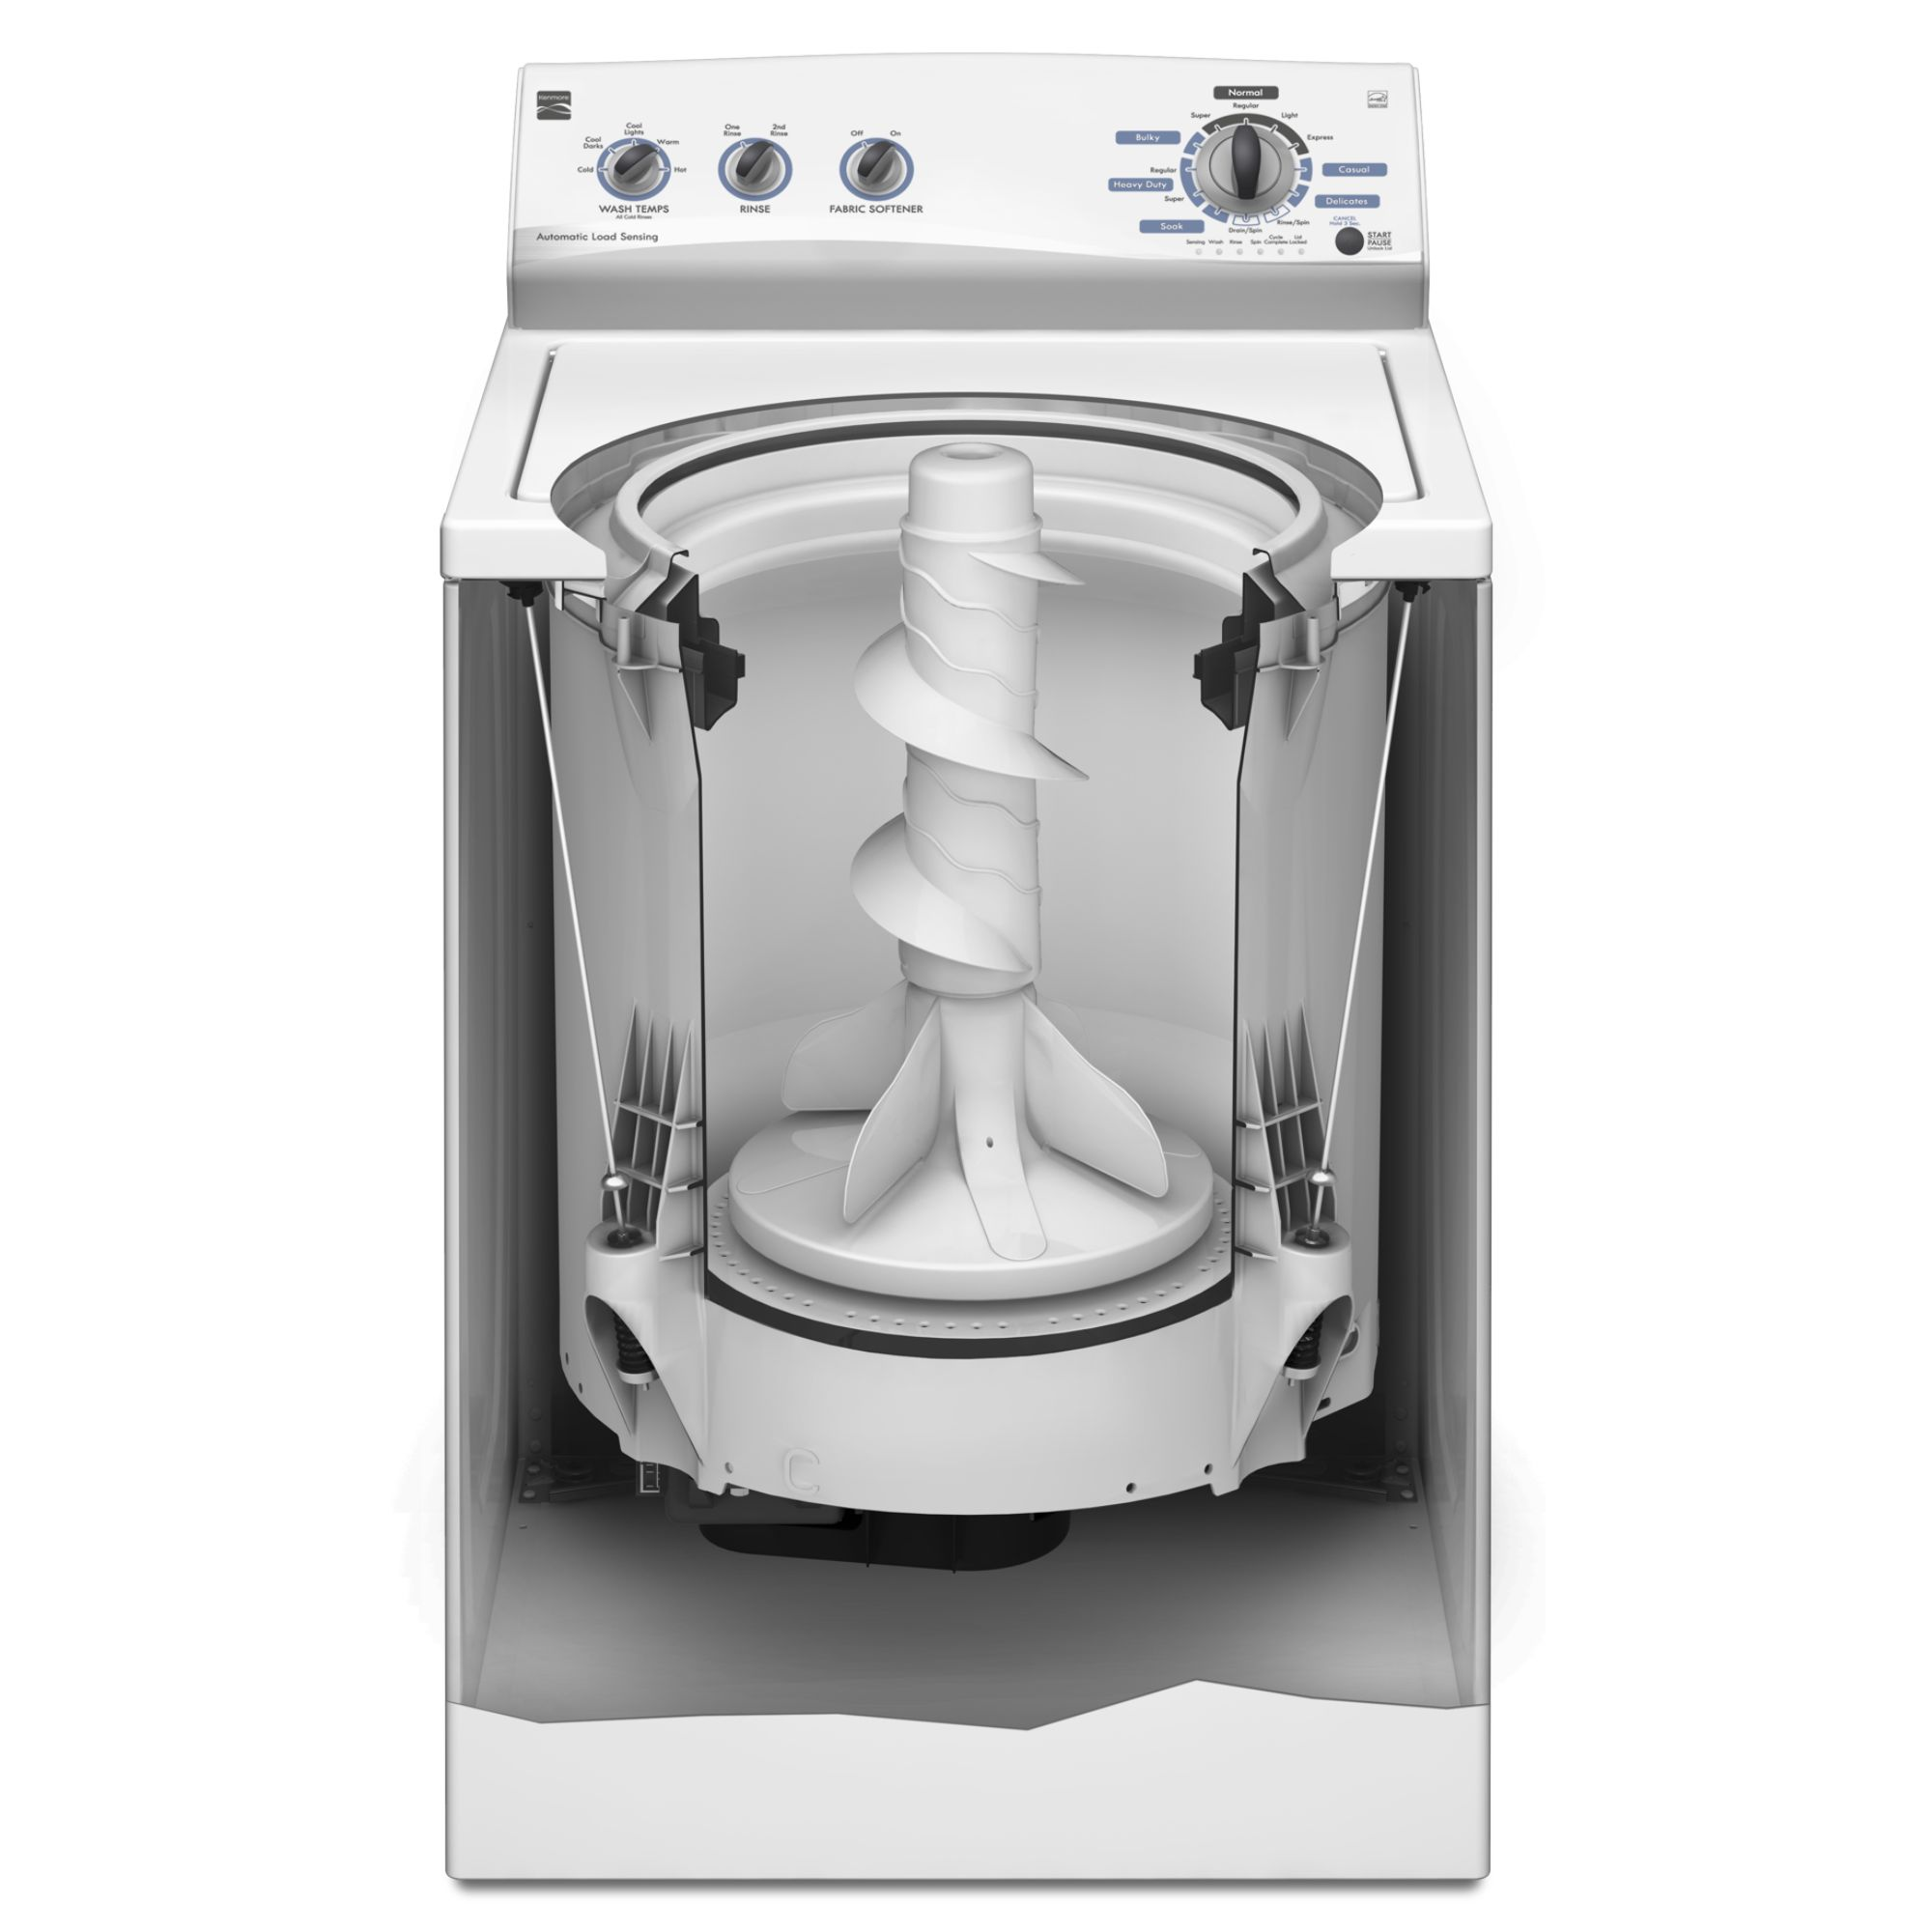 Kenmore 21252 3.4 cu. ft. Top-Load Washing Machine w/Triple-Action® Agitator - White